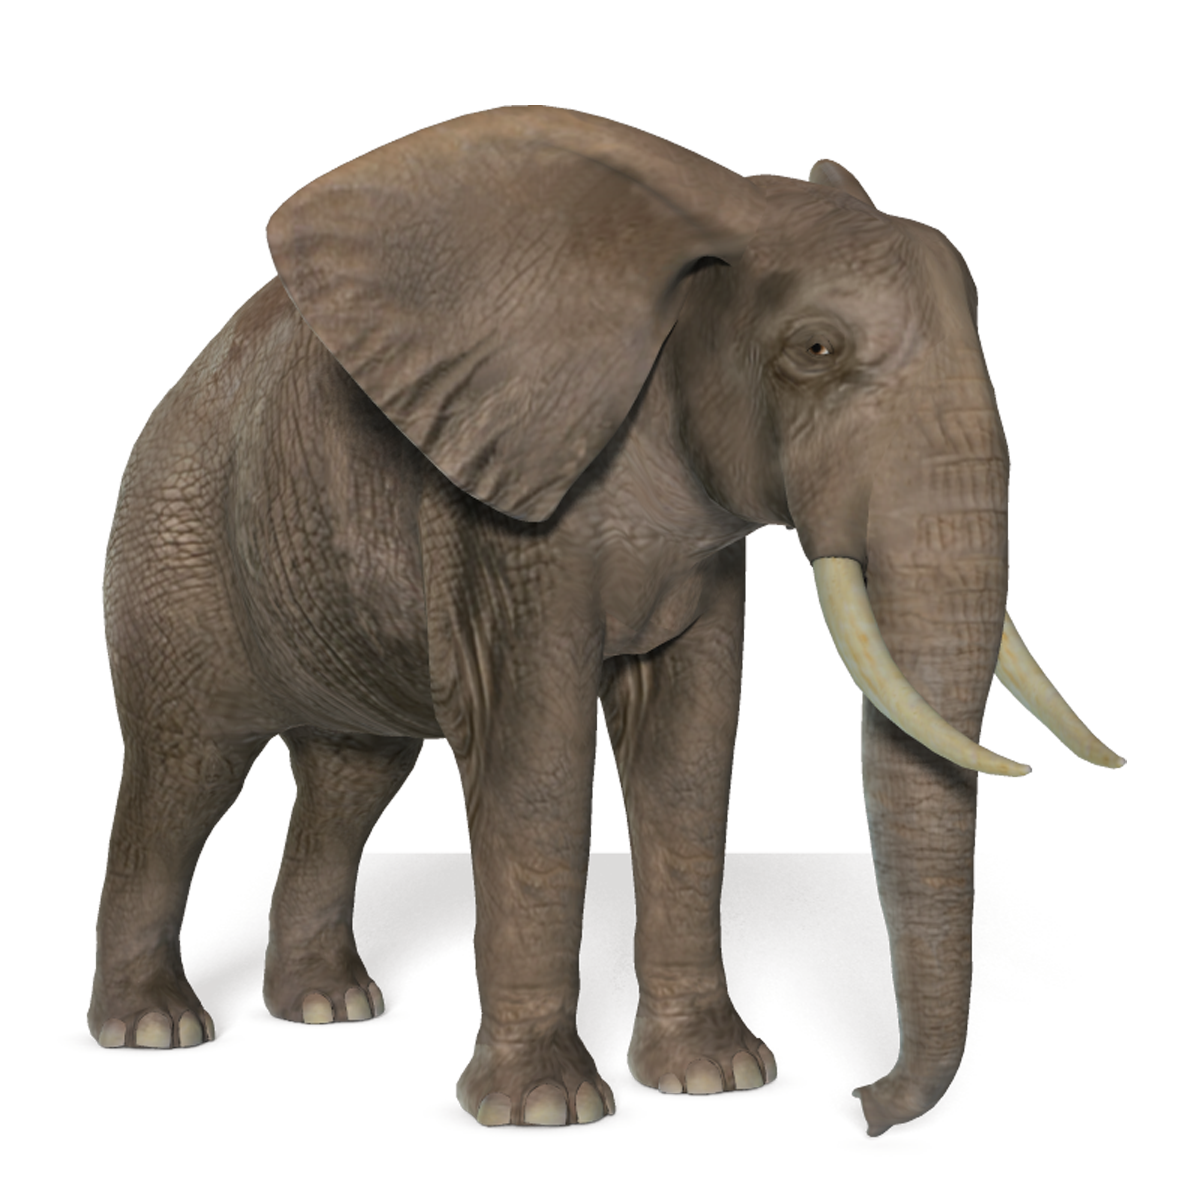 Elephant png picture